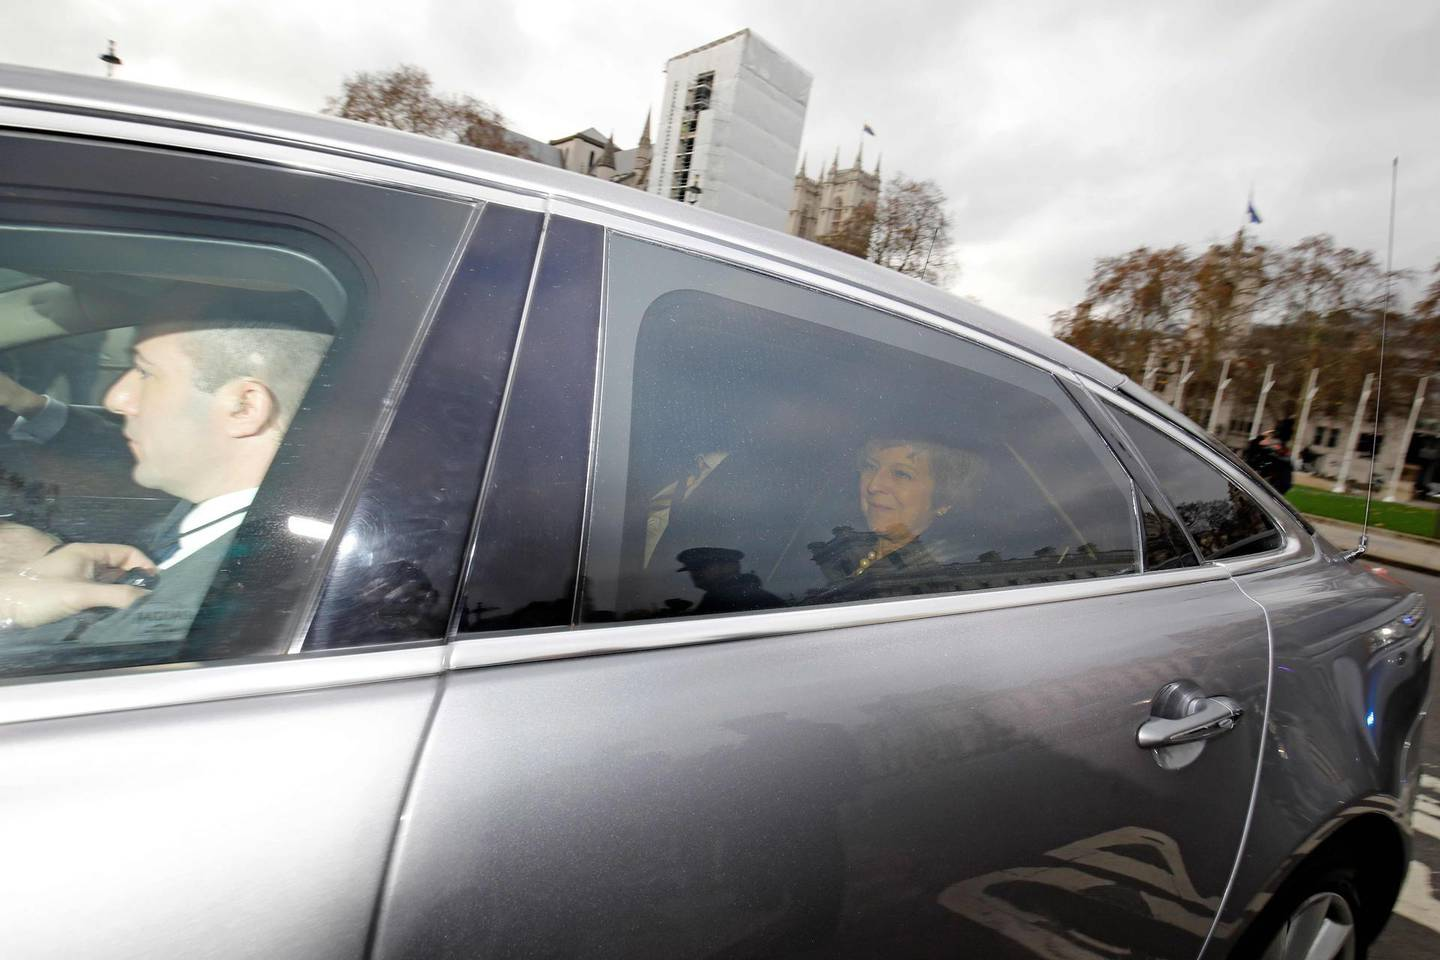 """Britain's Prime Minister Theresa May reacts as she is driven into the House of Commons in central London on December 12, 2018 ahead of the weekly question and answer session, Prime Ministers Questions (PMQs). British Prime Minister Theresa May was hit by a no-confidence motion by her own party on December 12 over the unpopular Brexit deal she struck with EU leaders last month. Facing her biggest crisis since assuming office a month after Britons voted in June 2016 to leave Europe, May vowed to fight the coup attempt inside her own Conservative Party """"with everything I've got"""".  / AFP / Tolga AKMEN"""